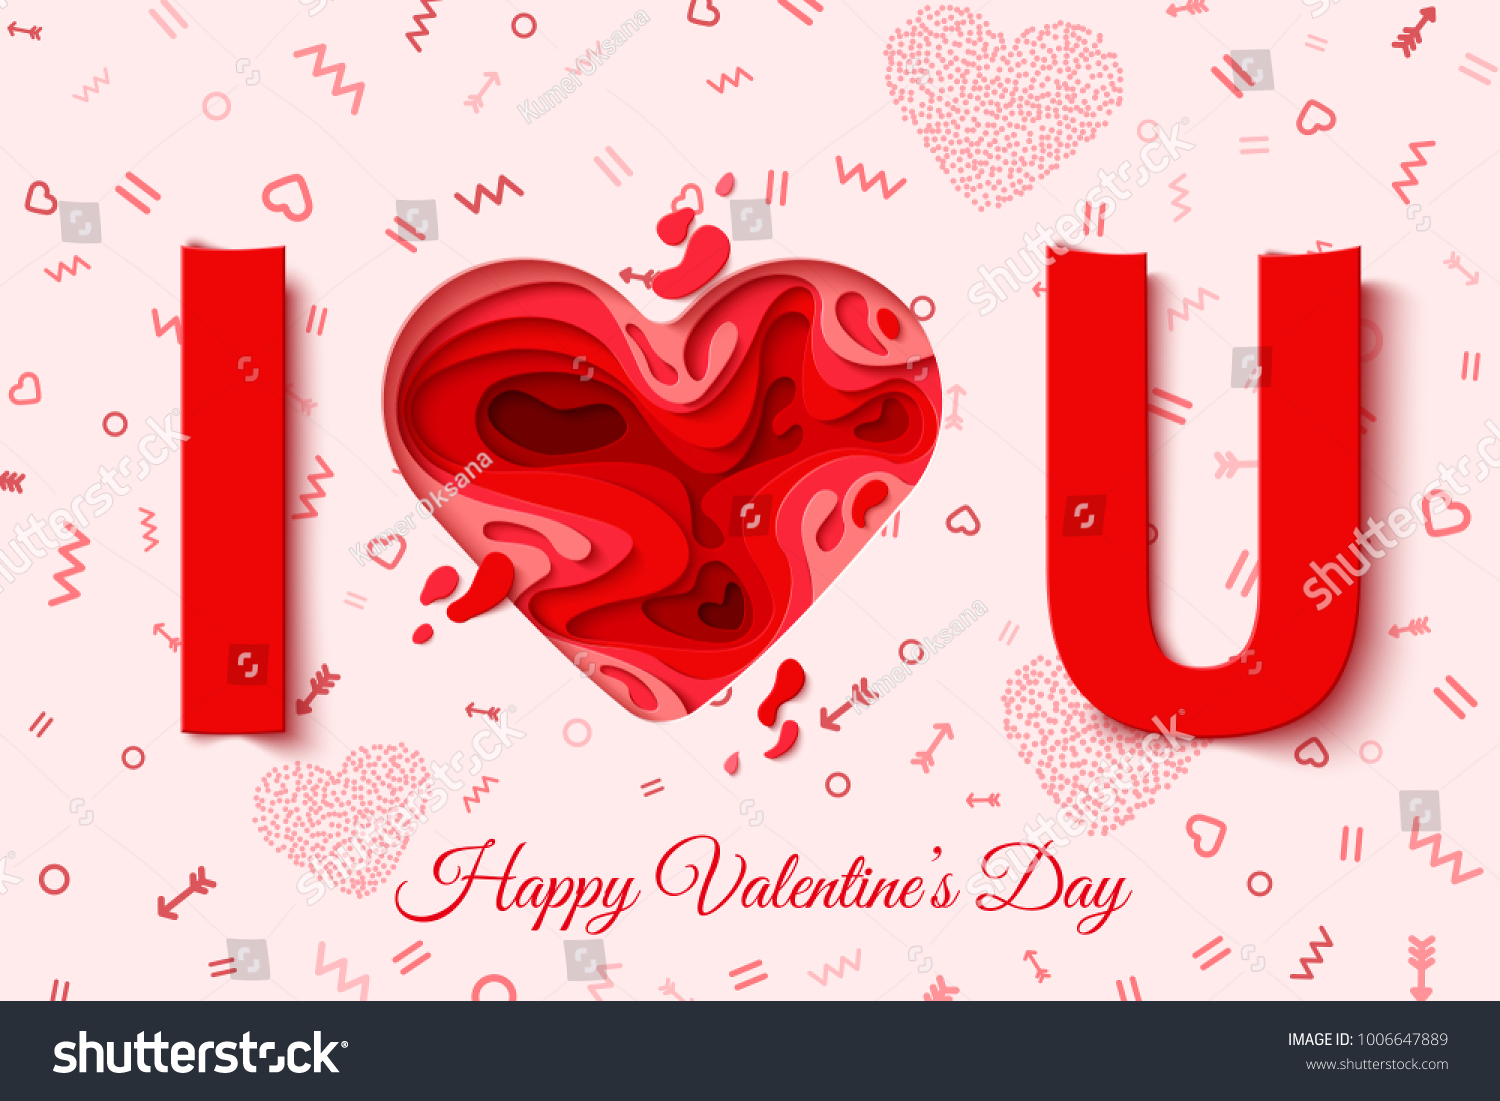 Love You Happy Valentines Day Greeting Stock Vector Royalty Free